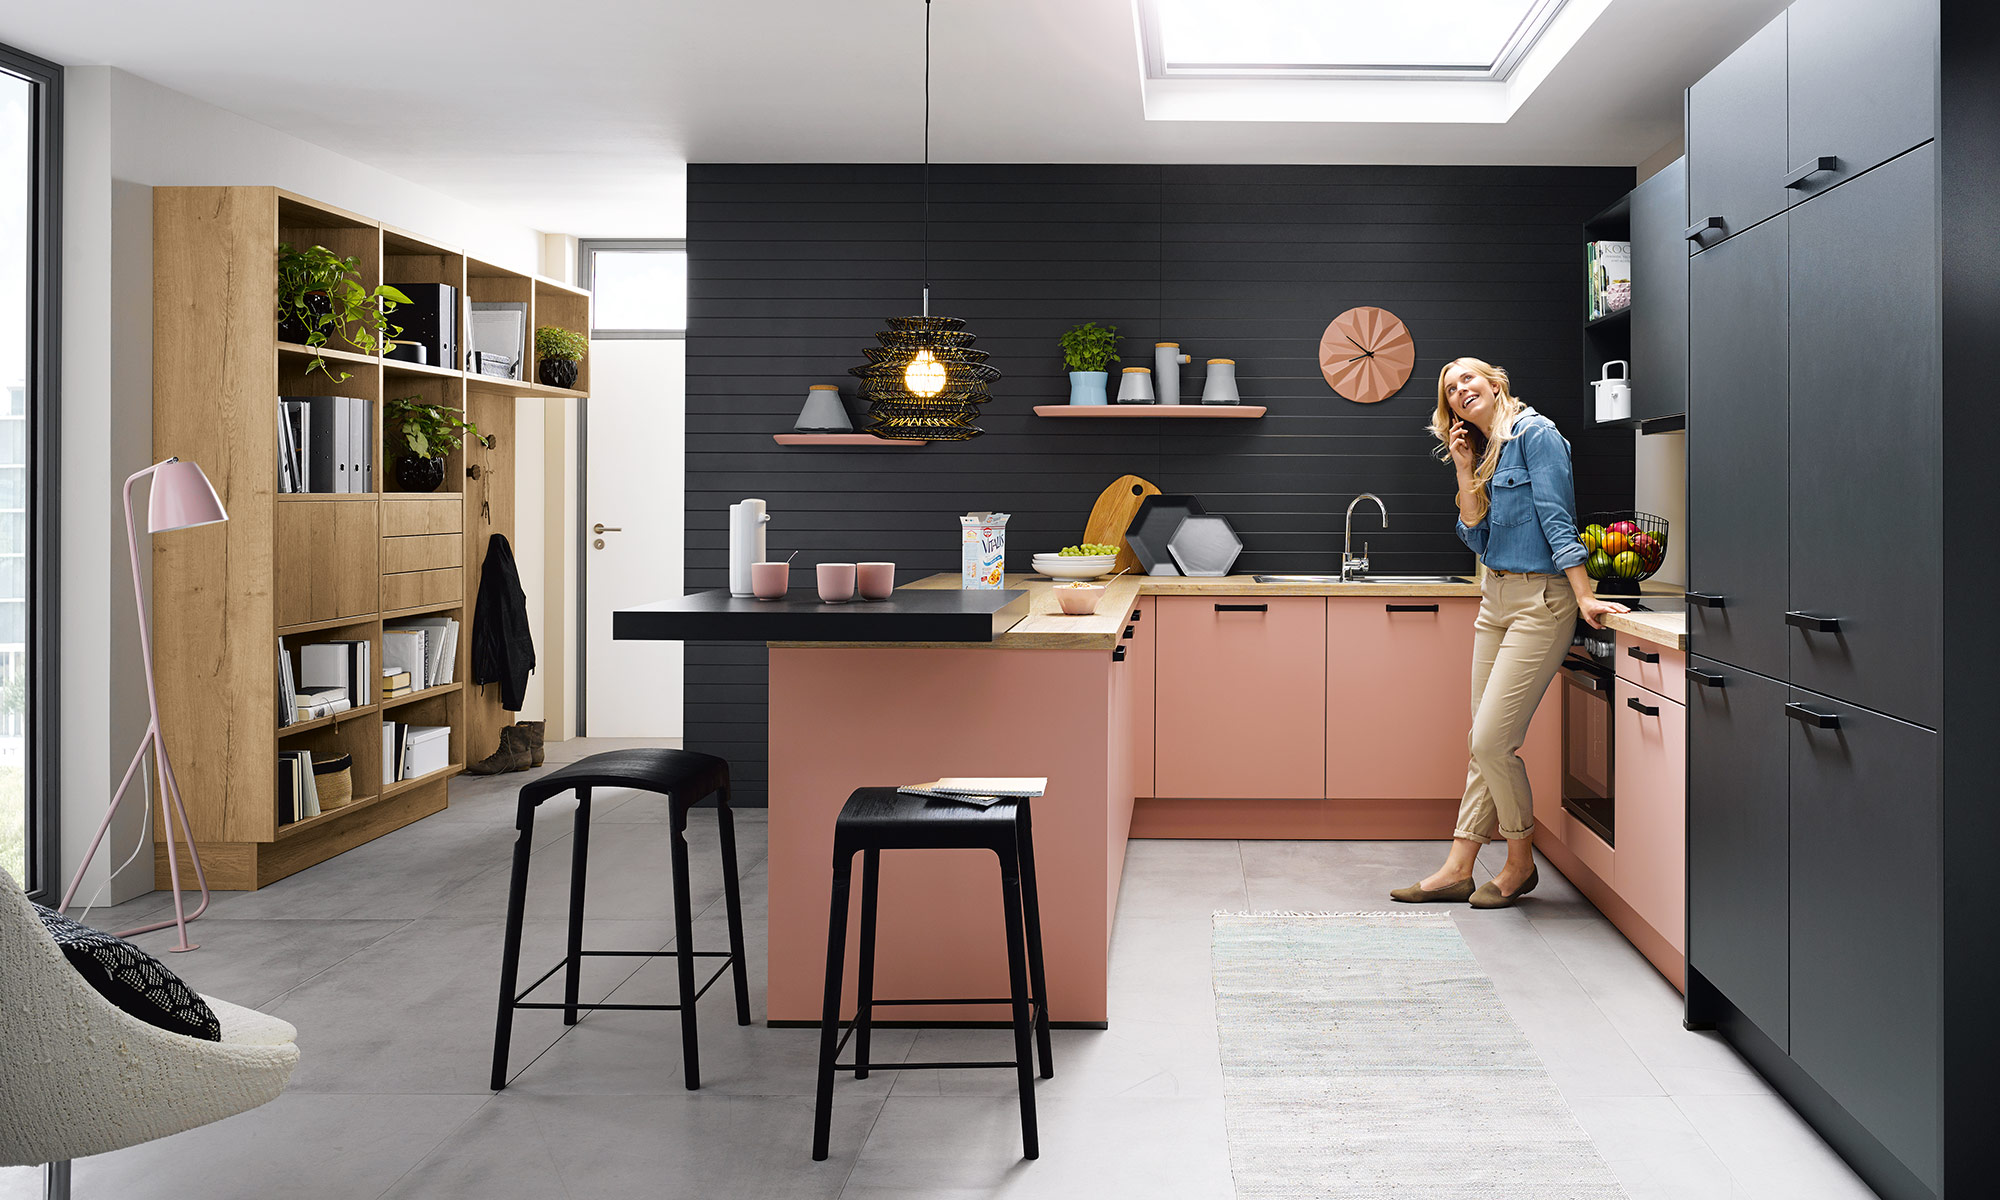 Pastel pink colour kitchen with a woman.